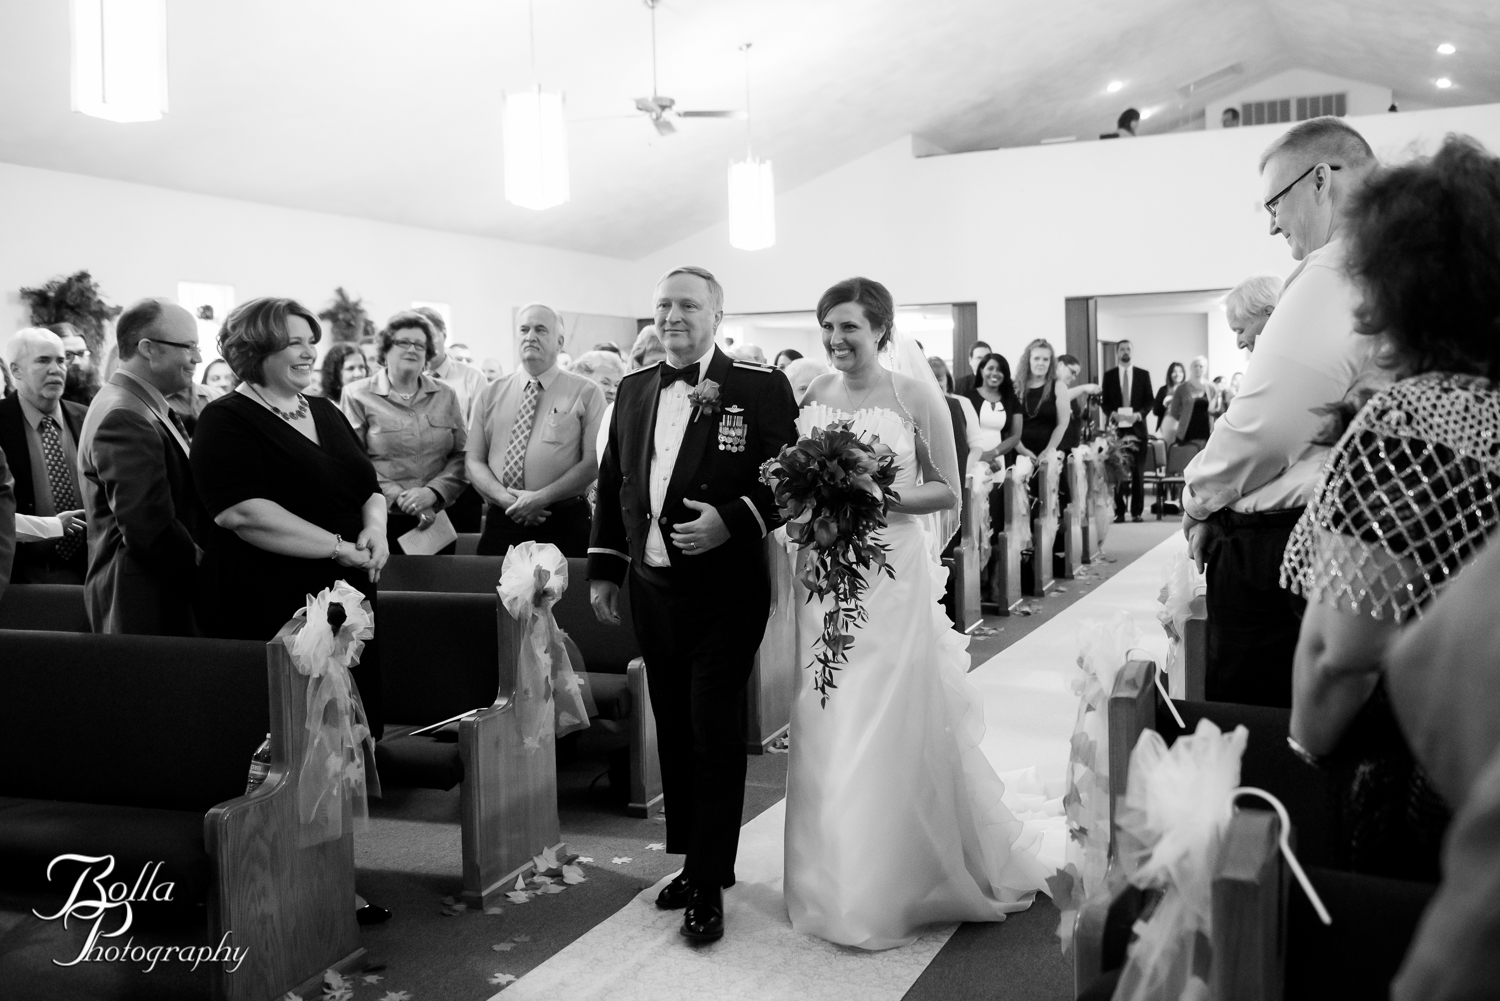 Bolla_Photography_St_Louis_wedding_photographer-0158.jpg